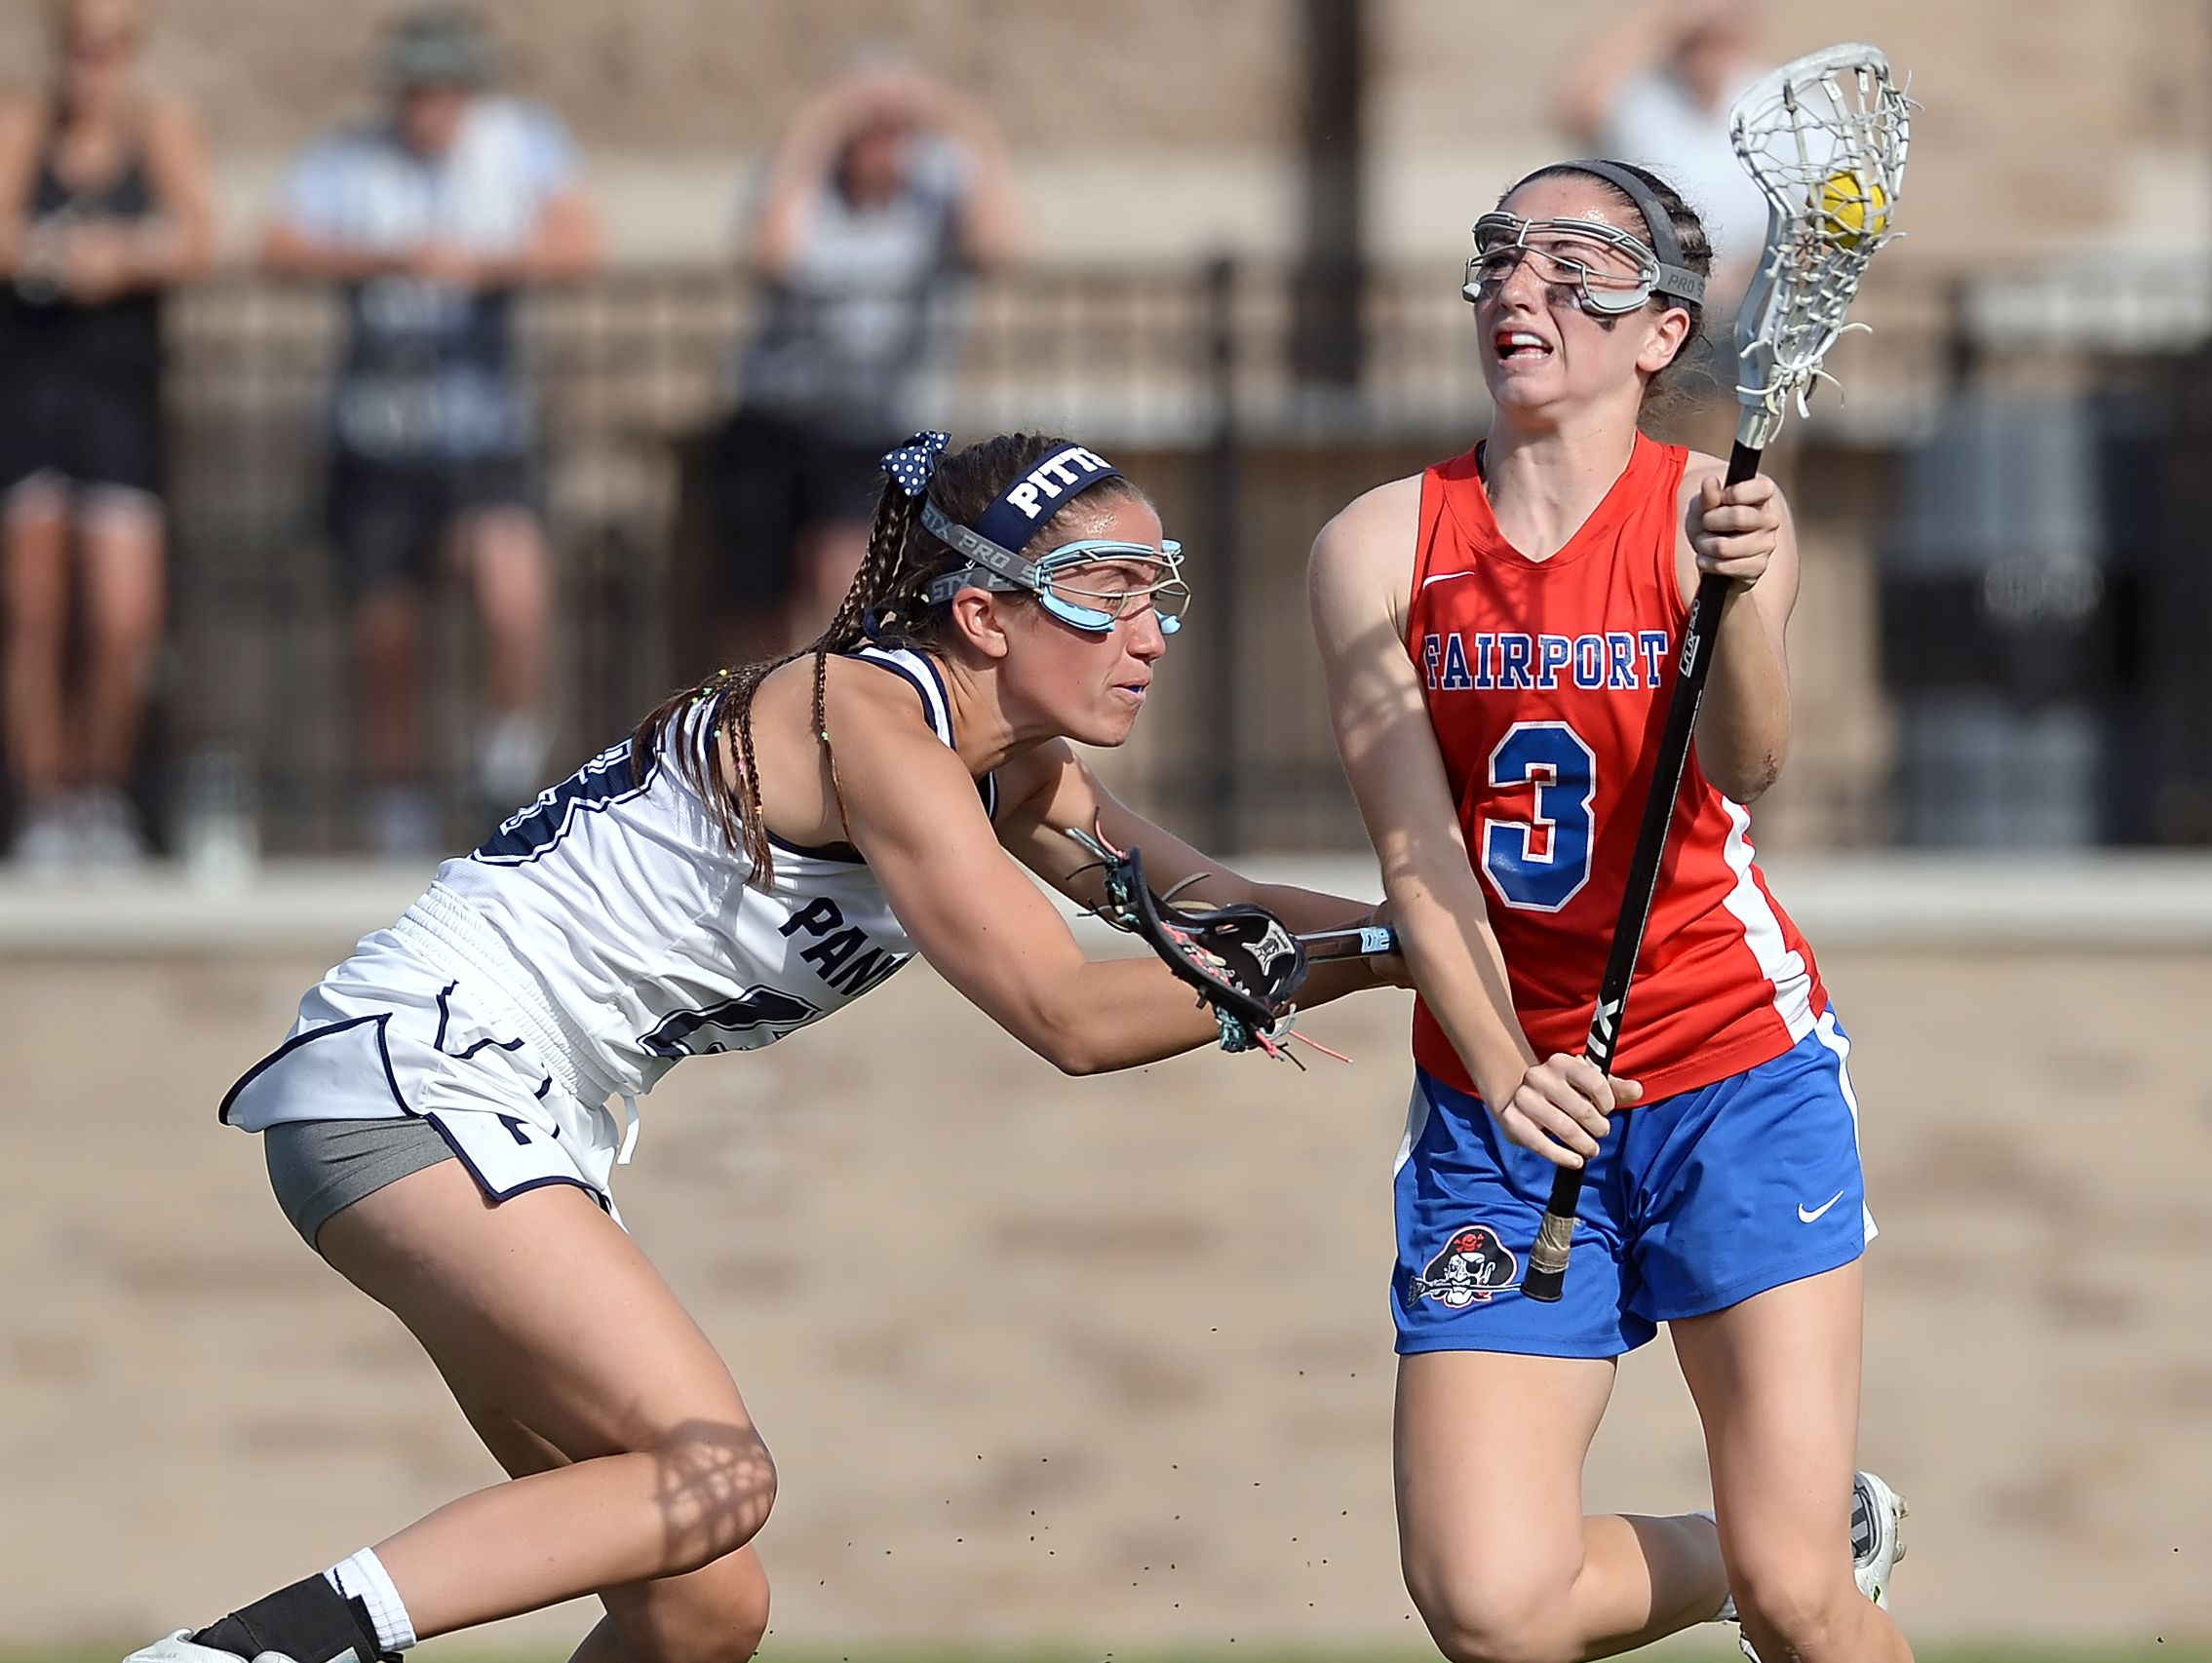 Fairport's Maddie Howe, right, is defended by Pittsford's Caroline Cullinan during the Section V Class A Girls Lacrosse Championship played at St. John Fisher College on Tuesday, May 31, 2016.